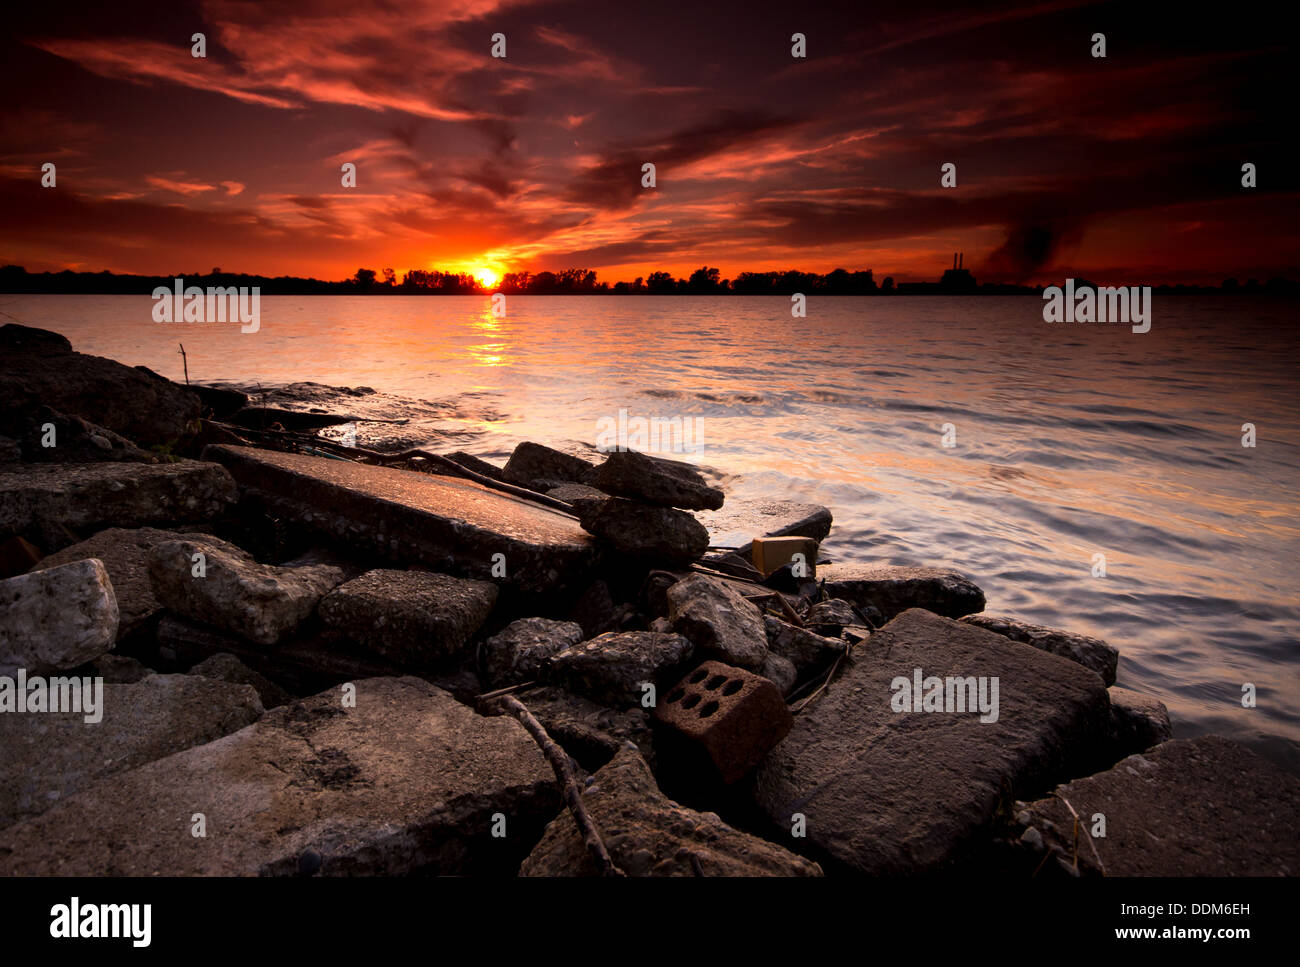 The sun setting over the Detroit River from Windsor, Ontario. - Stock Image